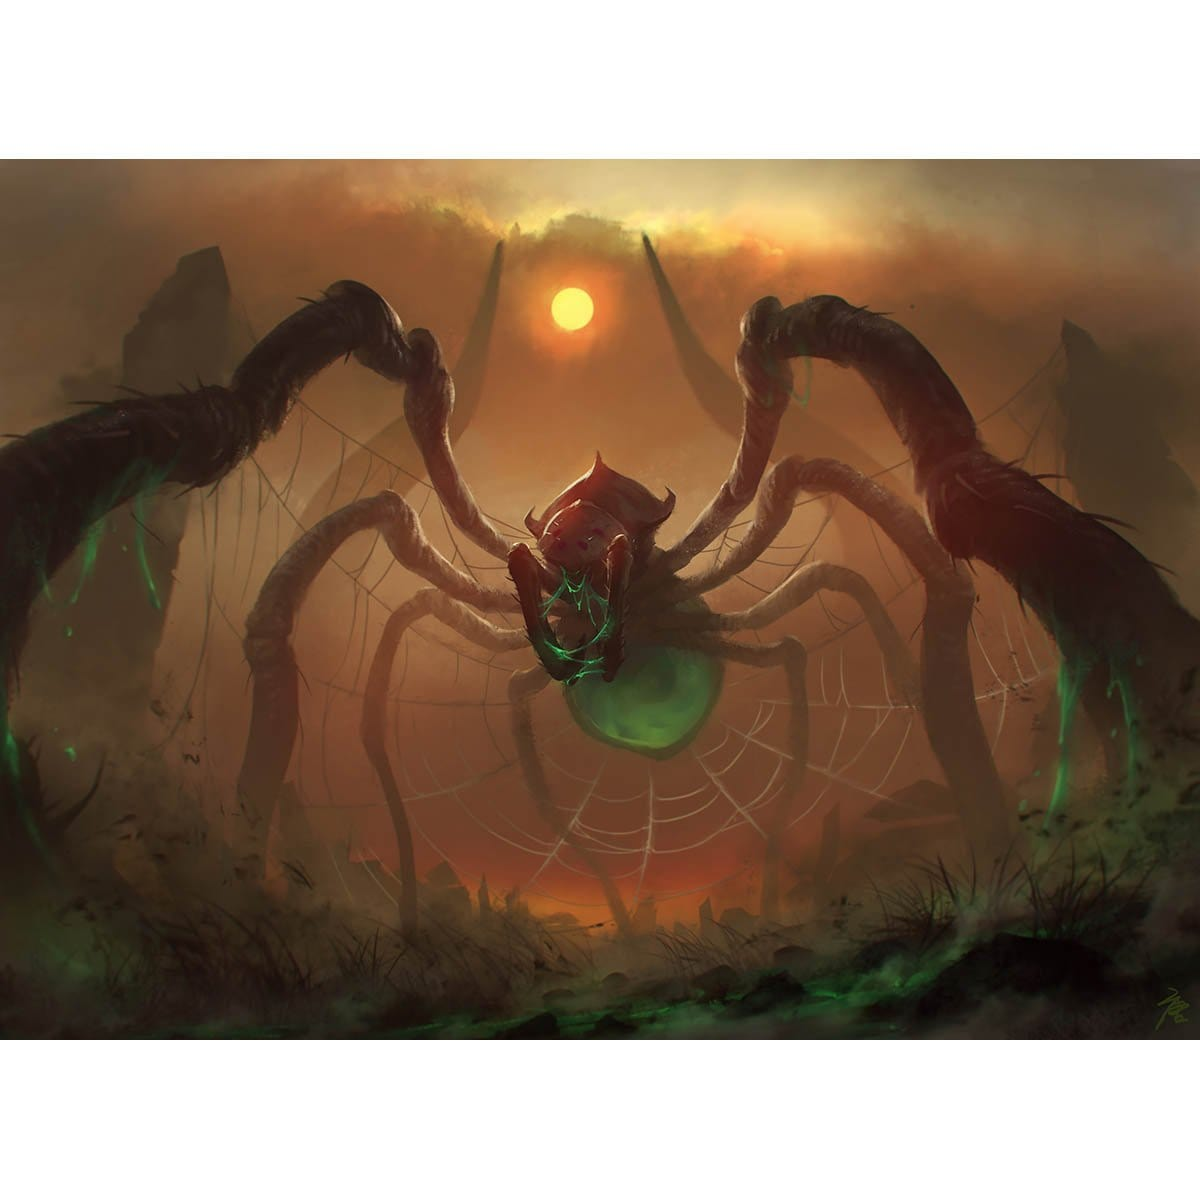 Obelisk Spider Print - Print - Original Magic Art - Accessories for Magic the Gathering and other card games